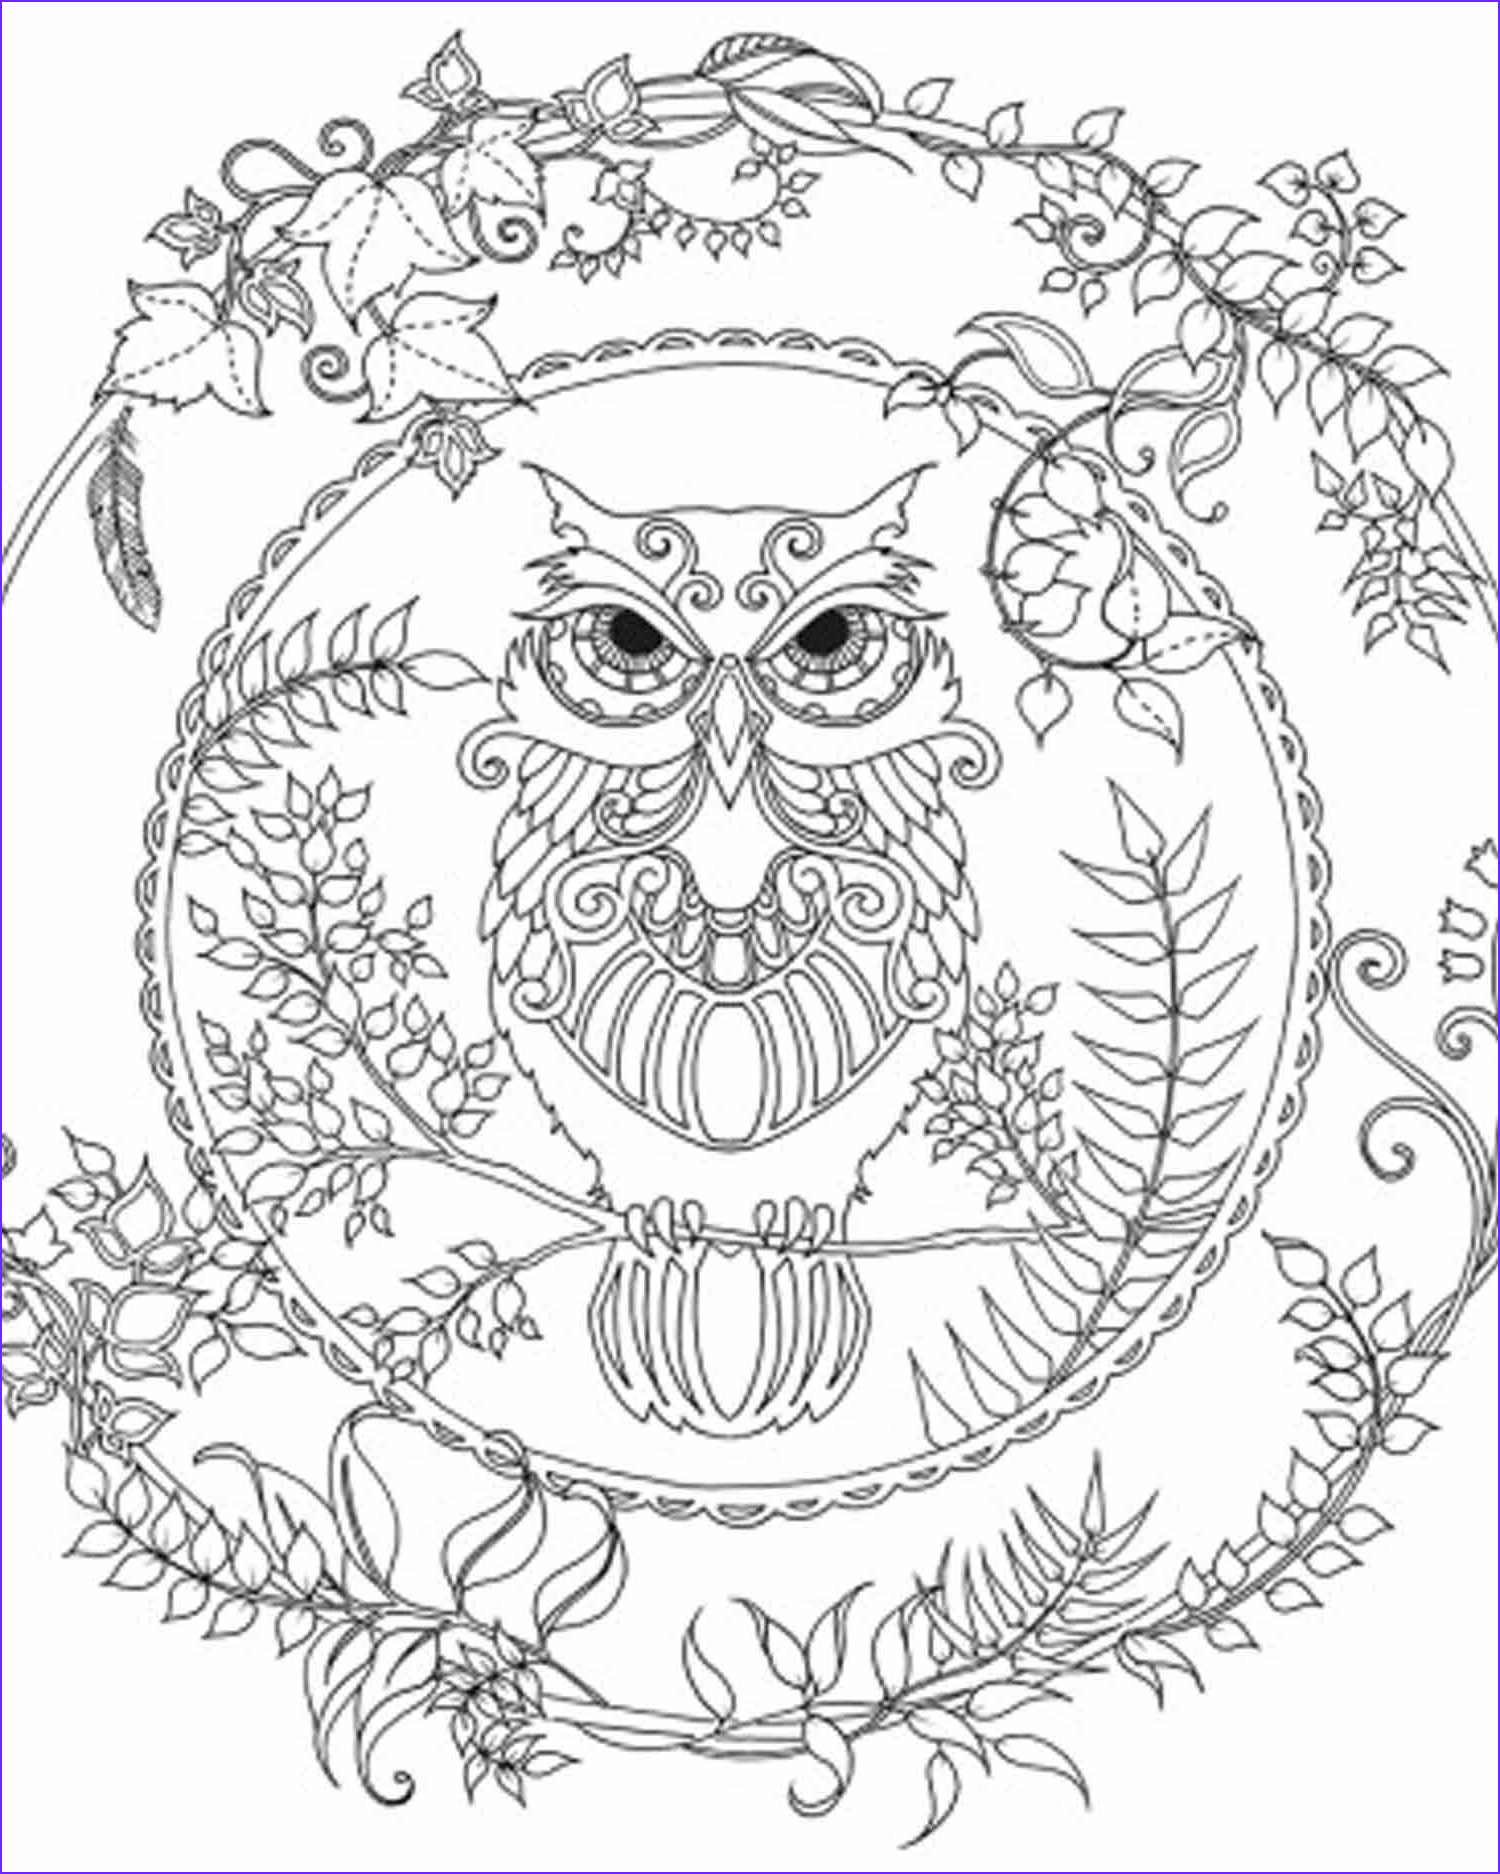 Owl Coloring Pages for Adults Beautiful Photos Brightbird Free Adult Coloring Pages